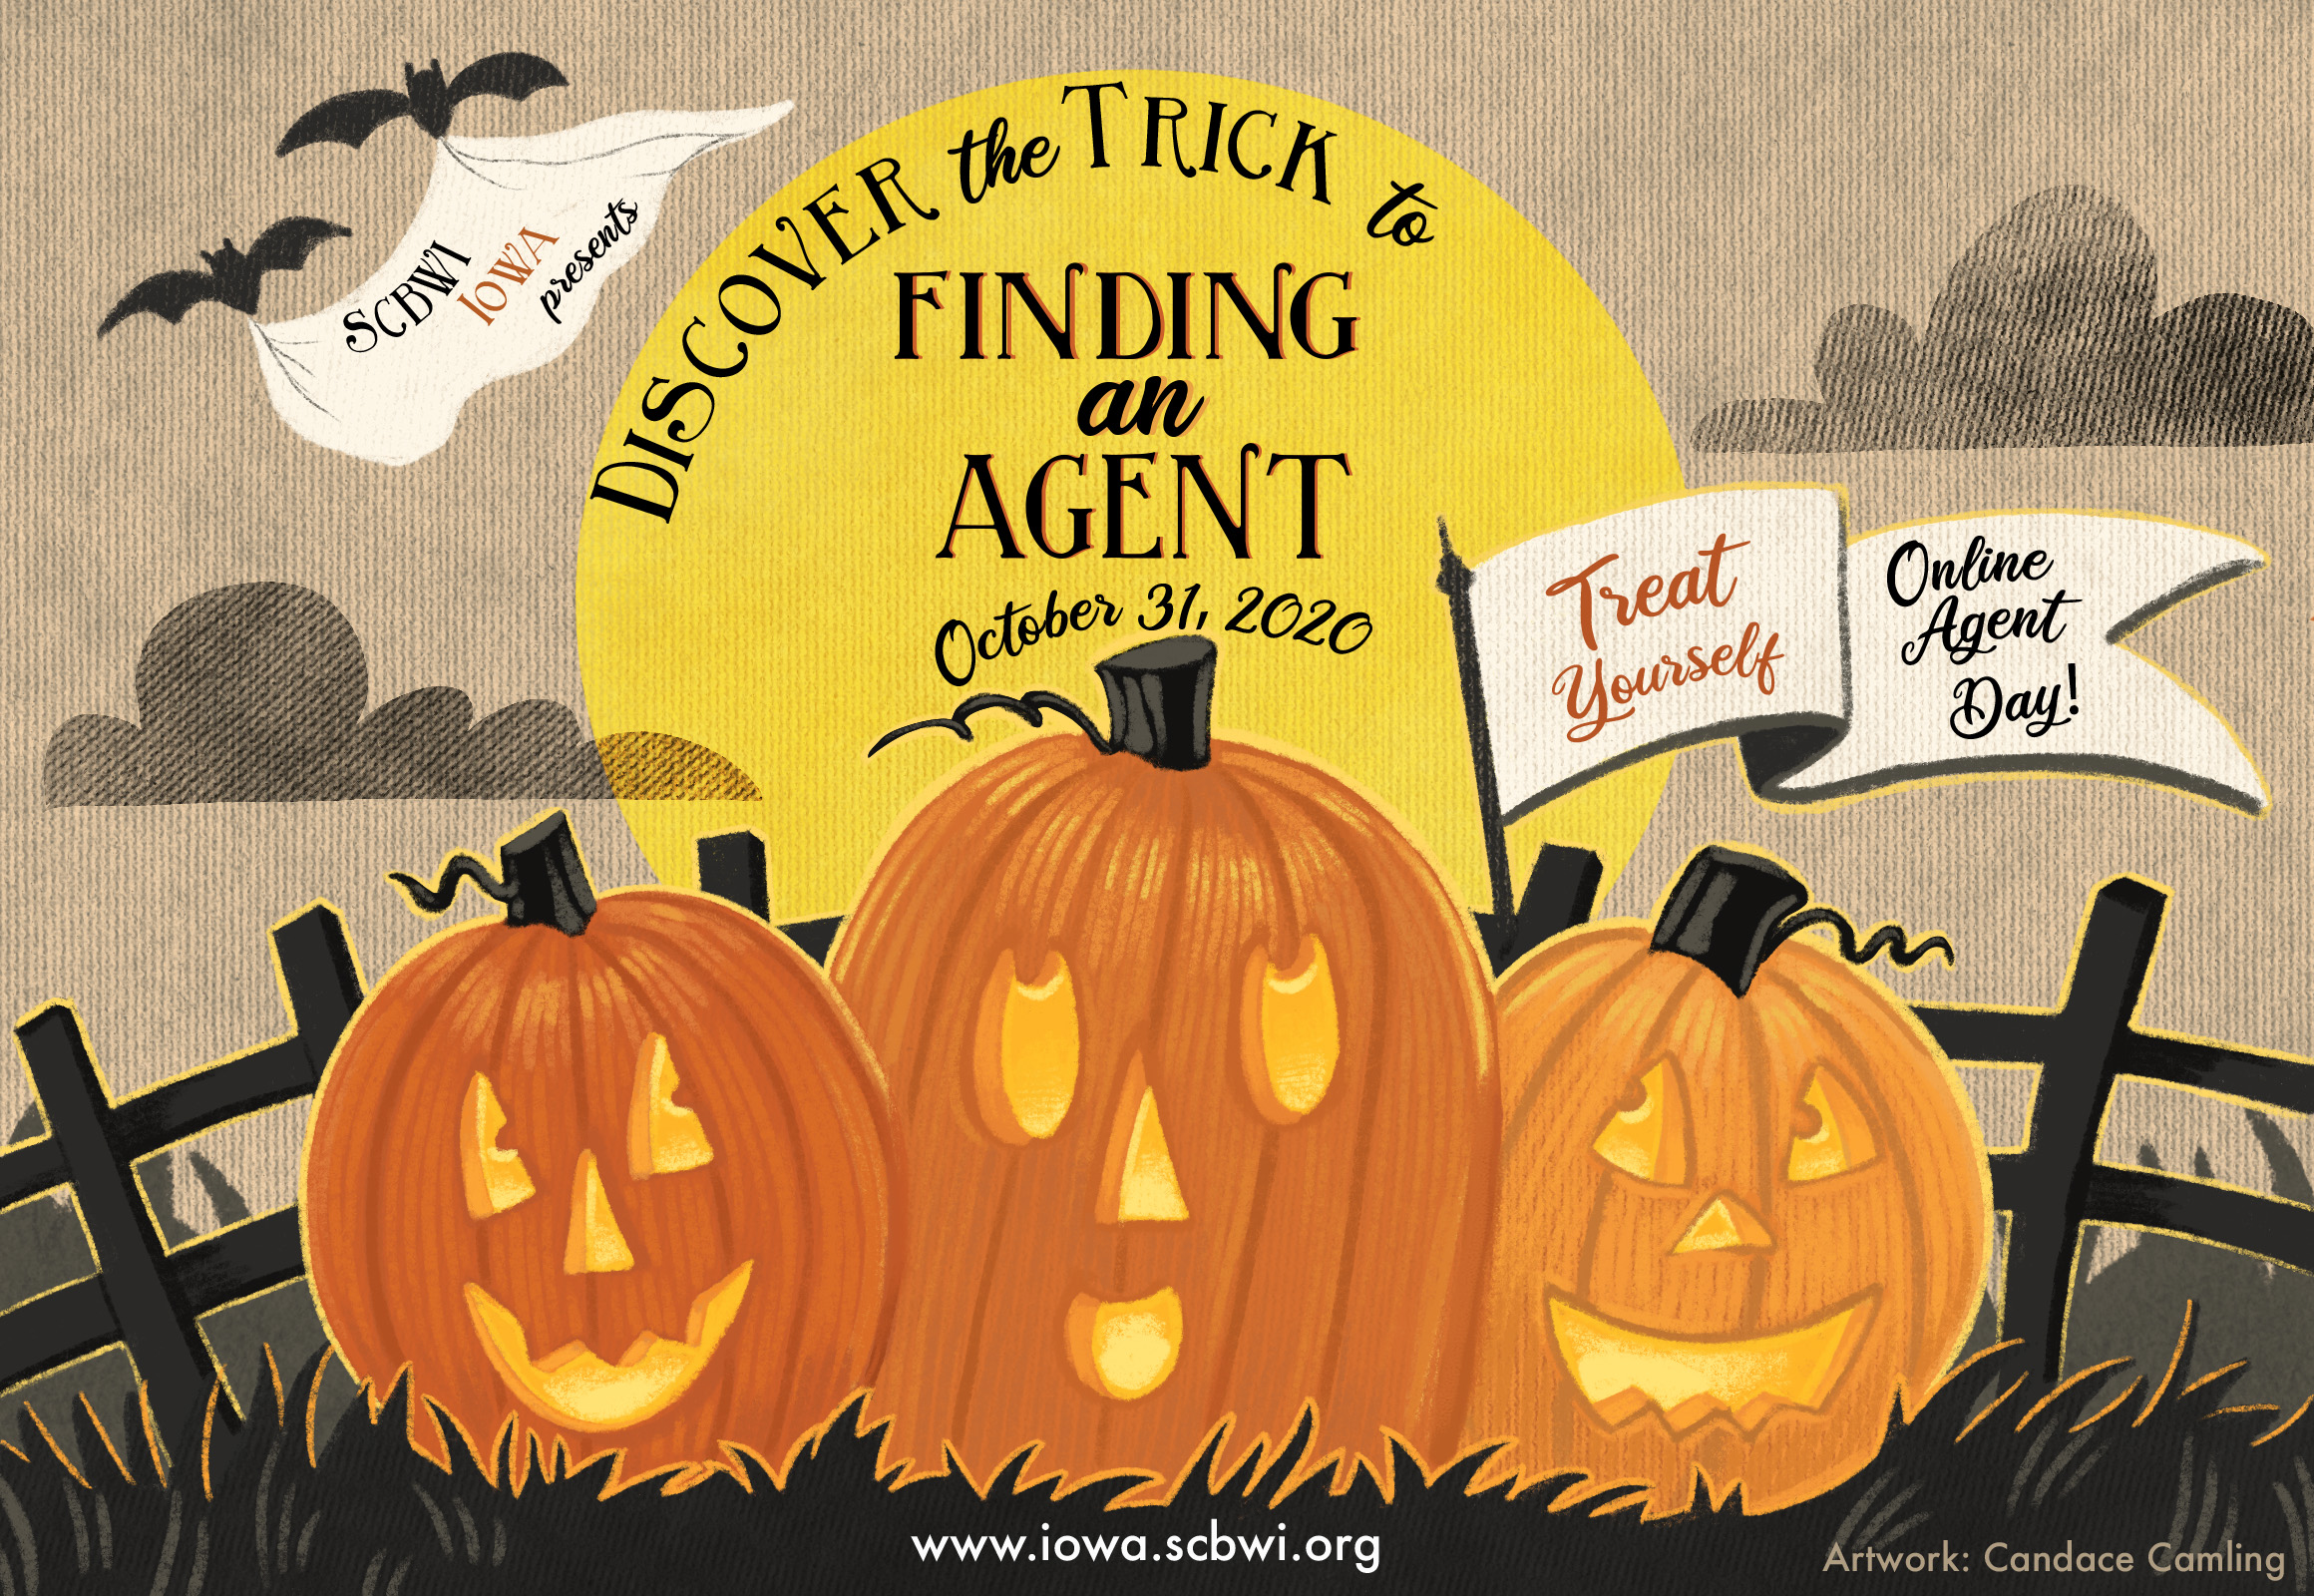 Treat Yourself to SCBWI Iowa Online Agent Day! Coming October 31st, 2020 - Discover the Trick to Finding an Agent   Featuring: James McGowan, Bookends Literary Agency Beth Phelan, Gallt & Zacker Literary Agency Charlotte Wenger, Prospect Agency Visit the event page here to learn more!